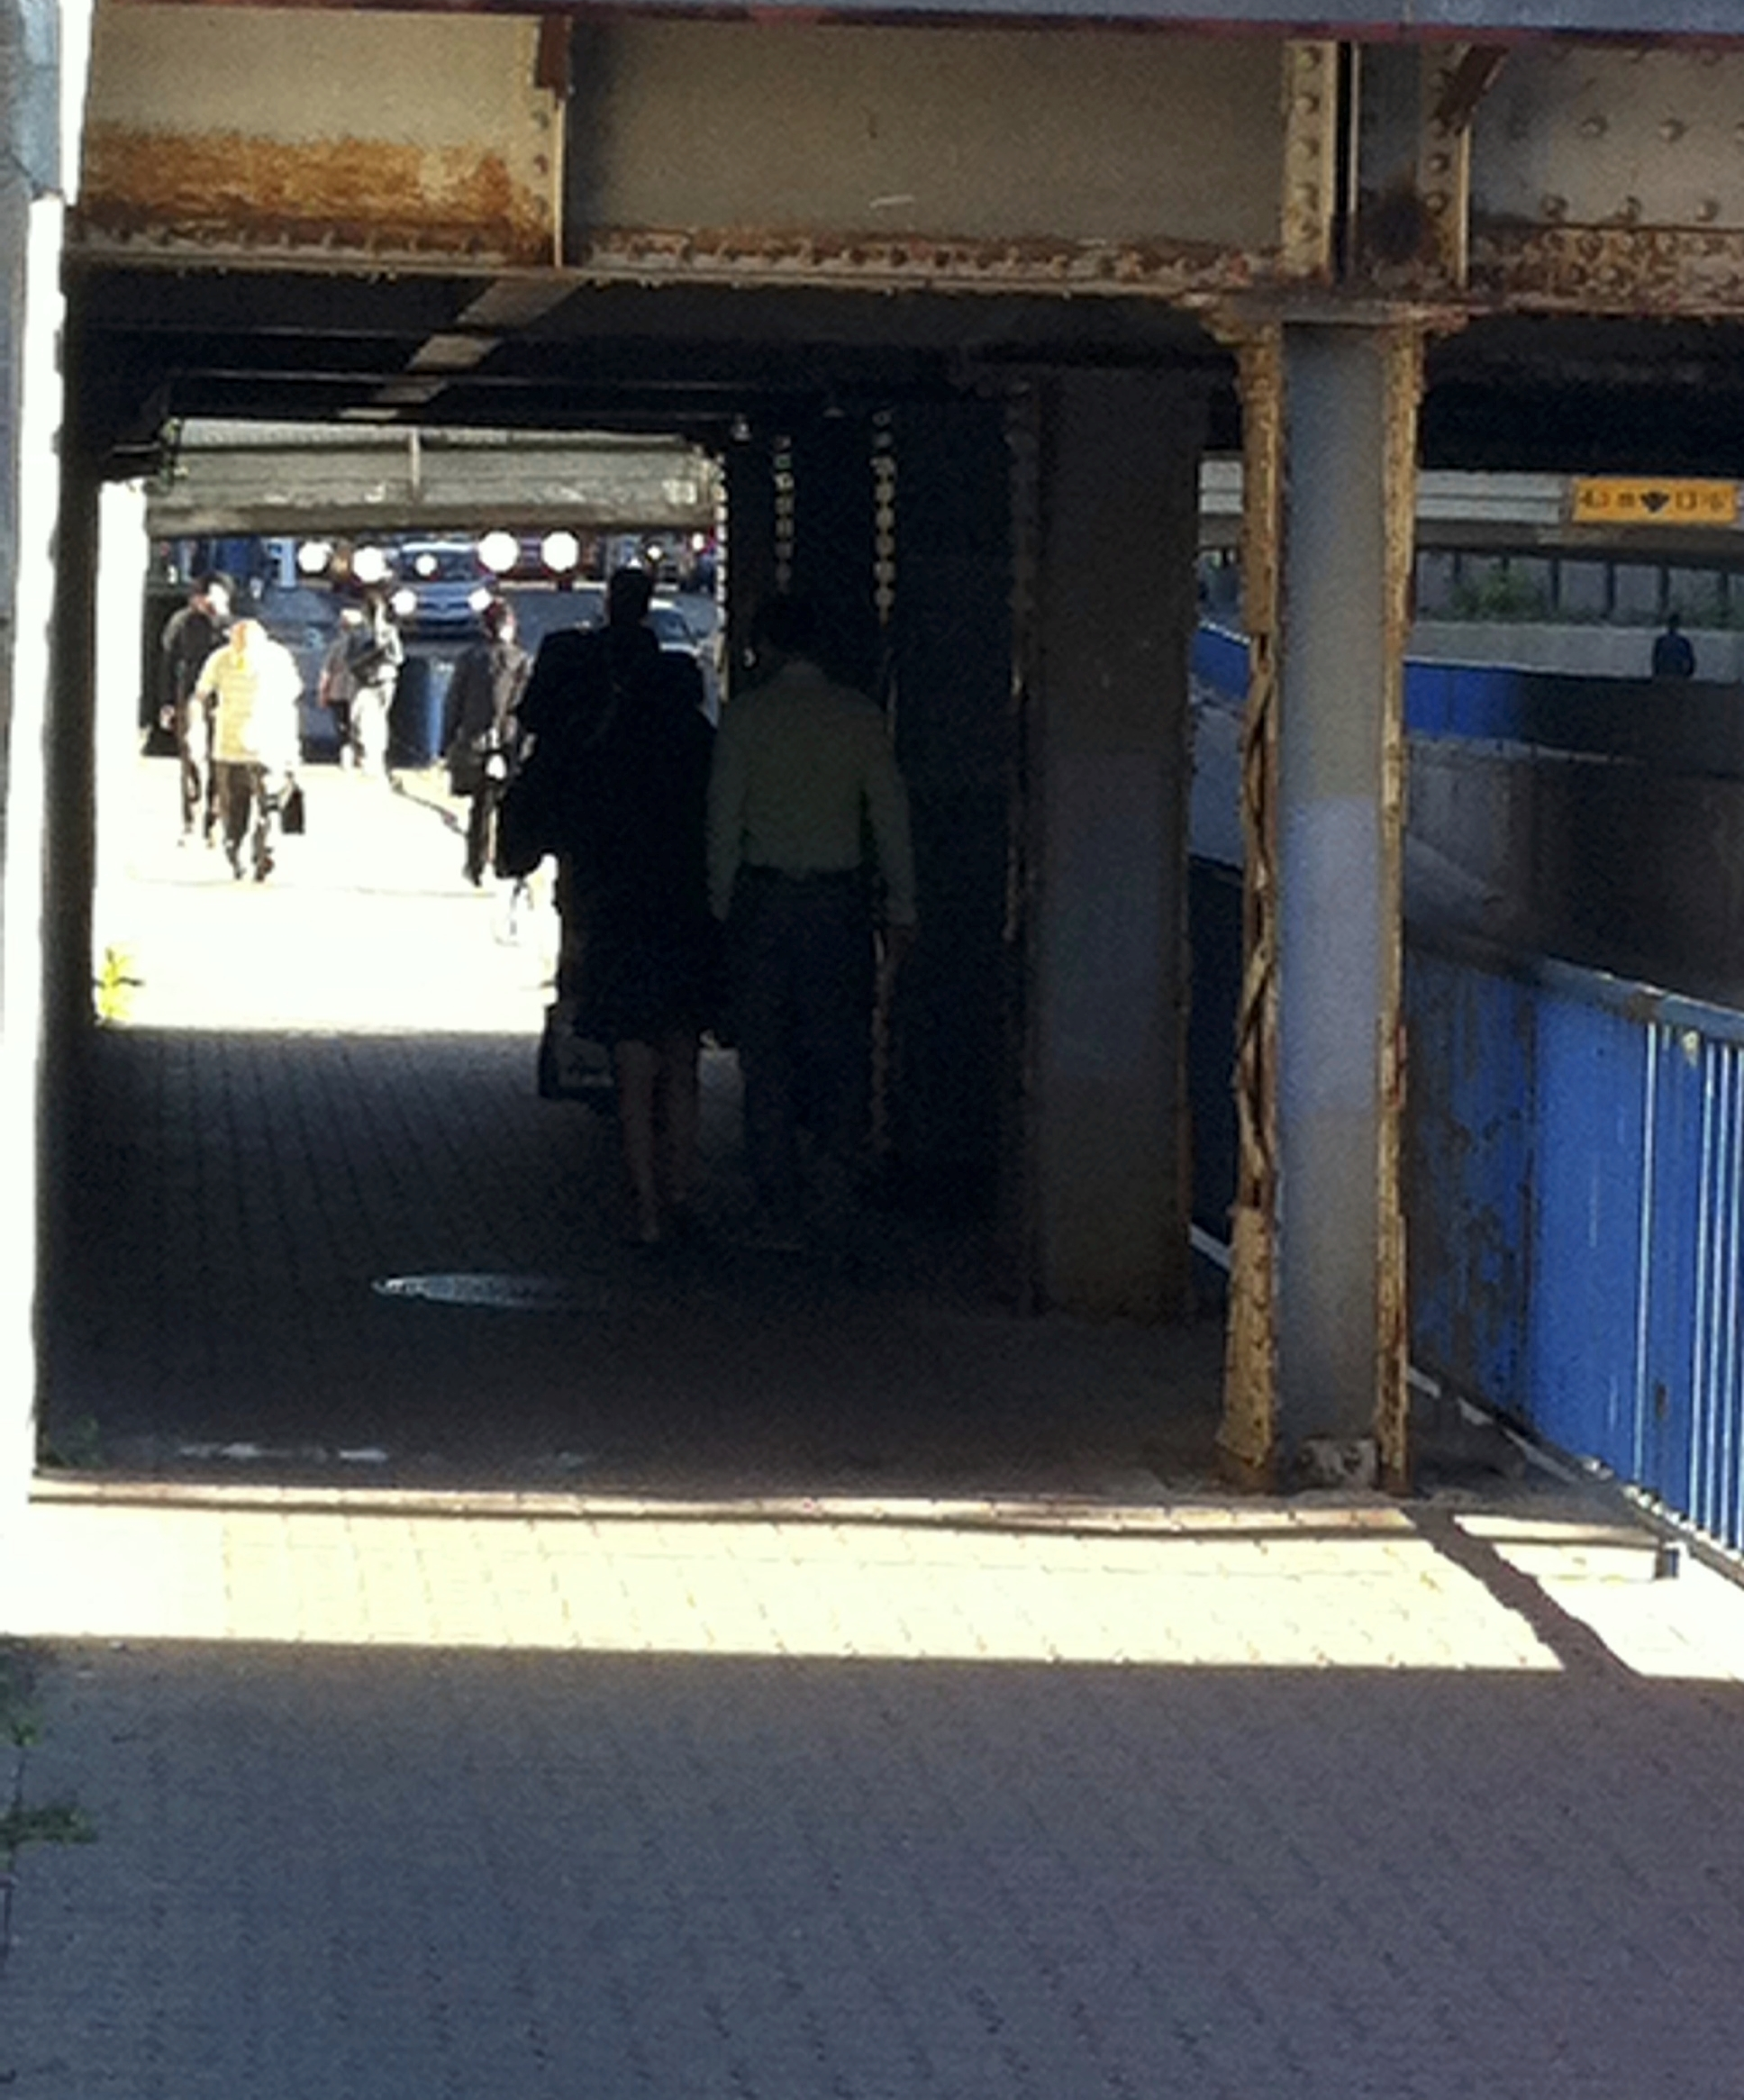 The Eight Street SW underpass has the highest number of pedestrians commuting from the southside into downtown. It will get a mega make-over in 2014.